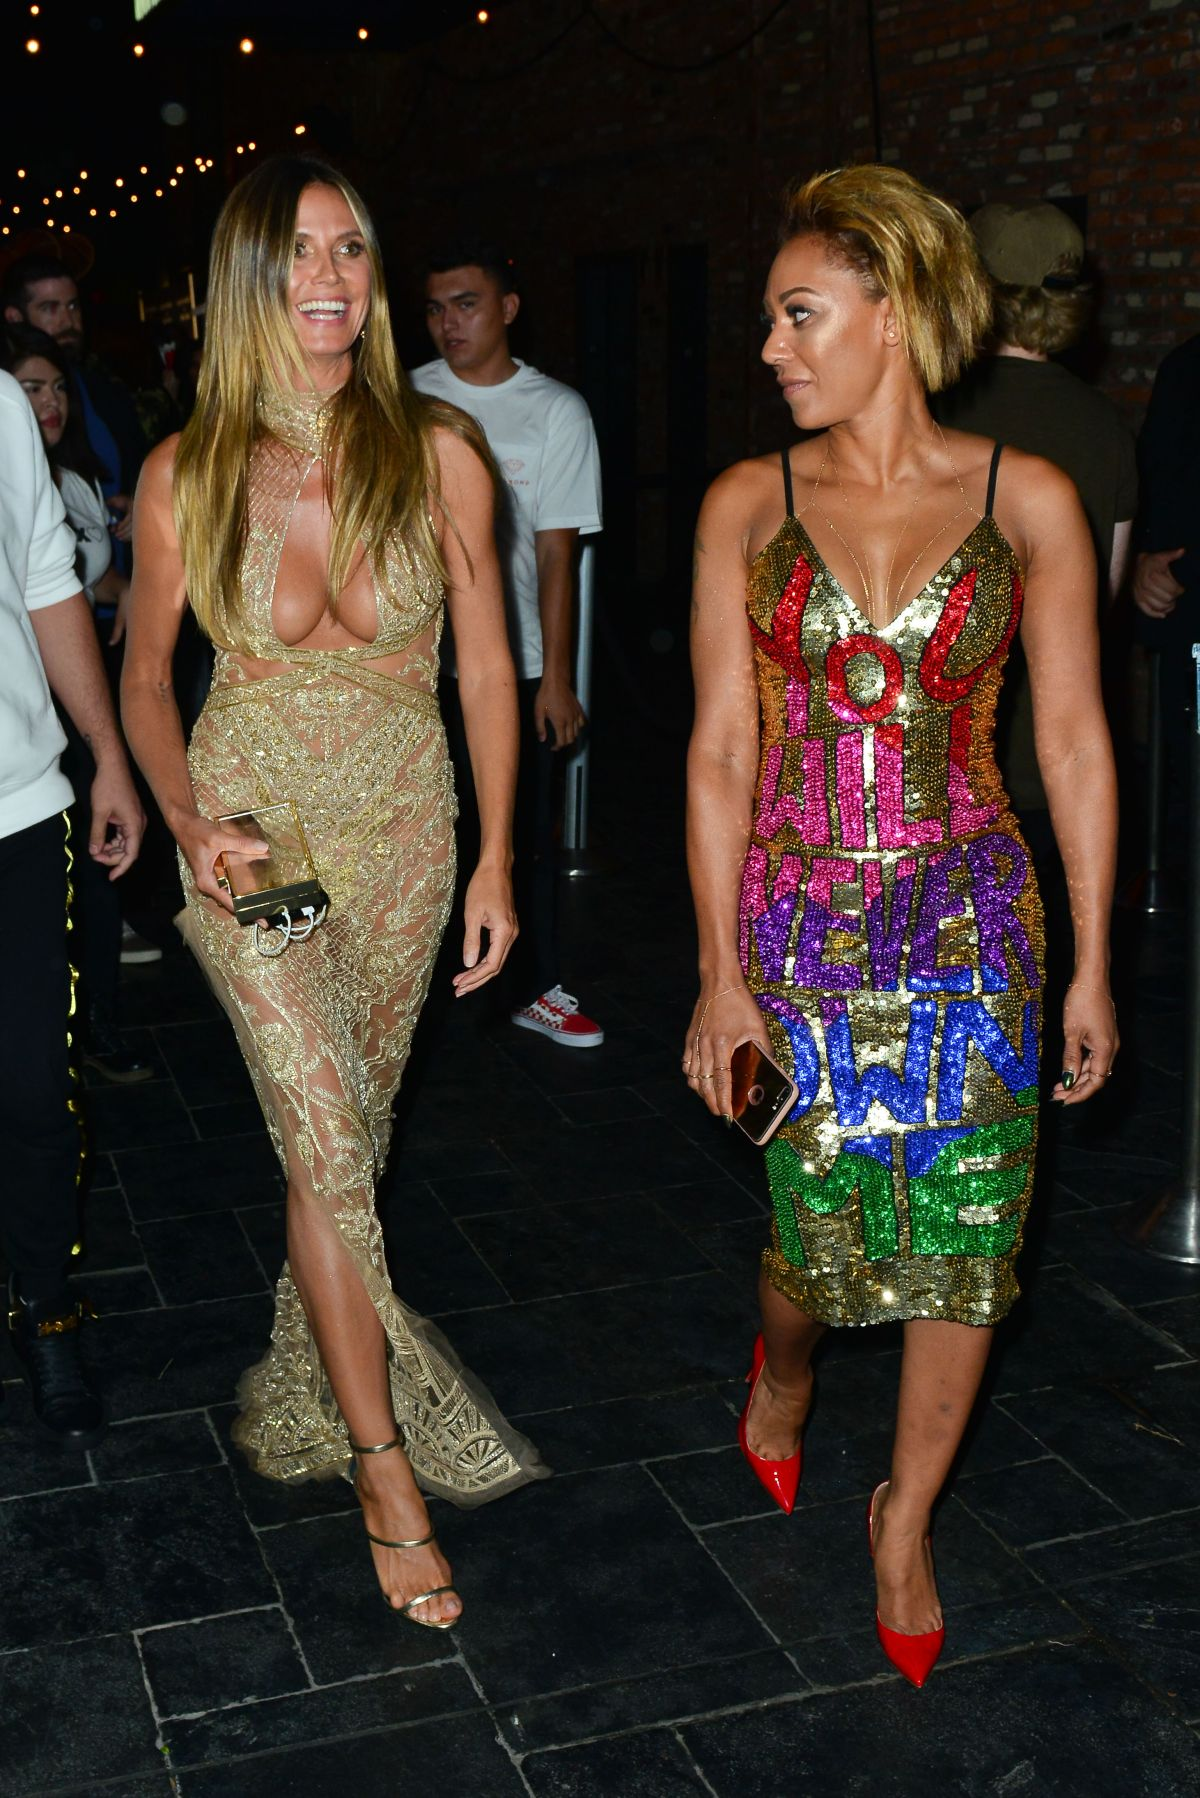 HEIDI KLUM and MELANIE BROWN at Beauty & Essex VMA After-party in Hollywood 08/27/2017